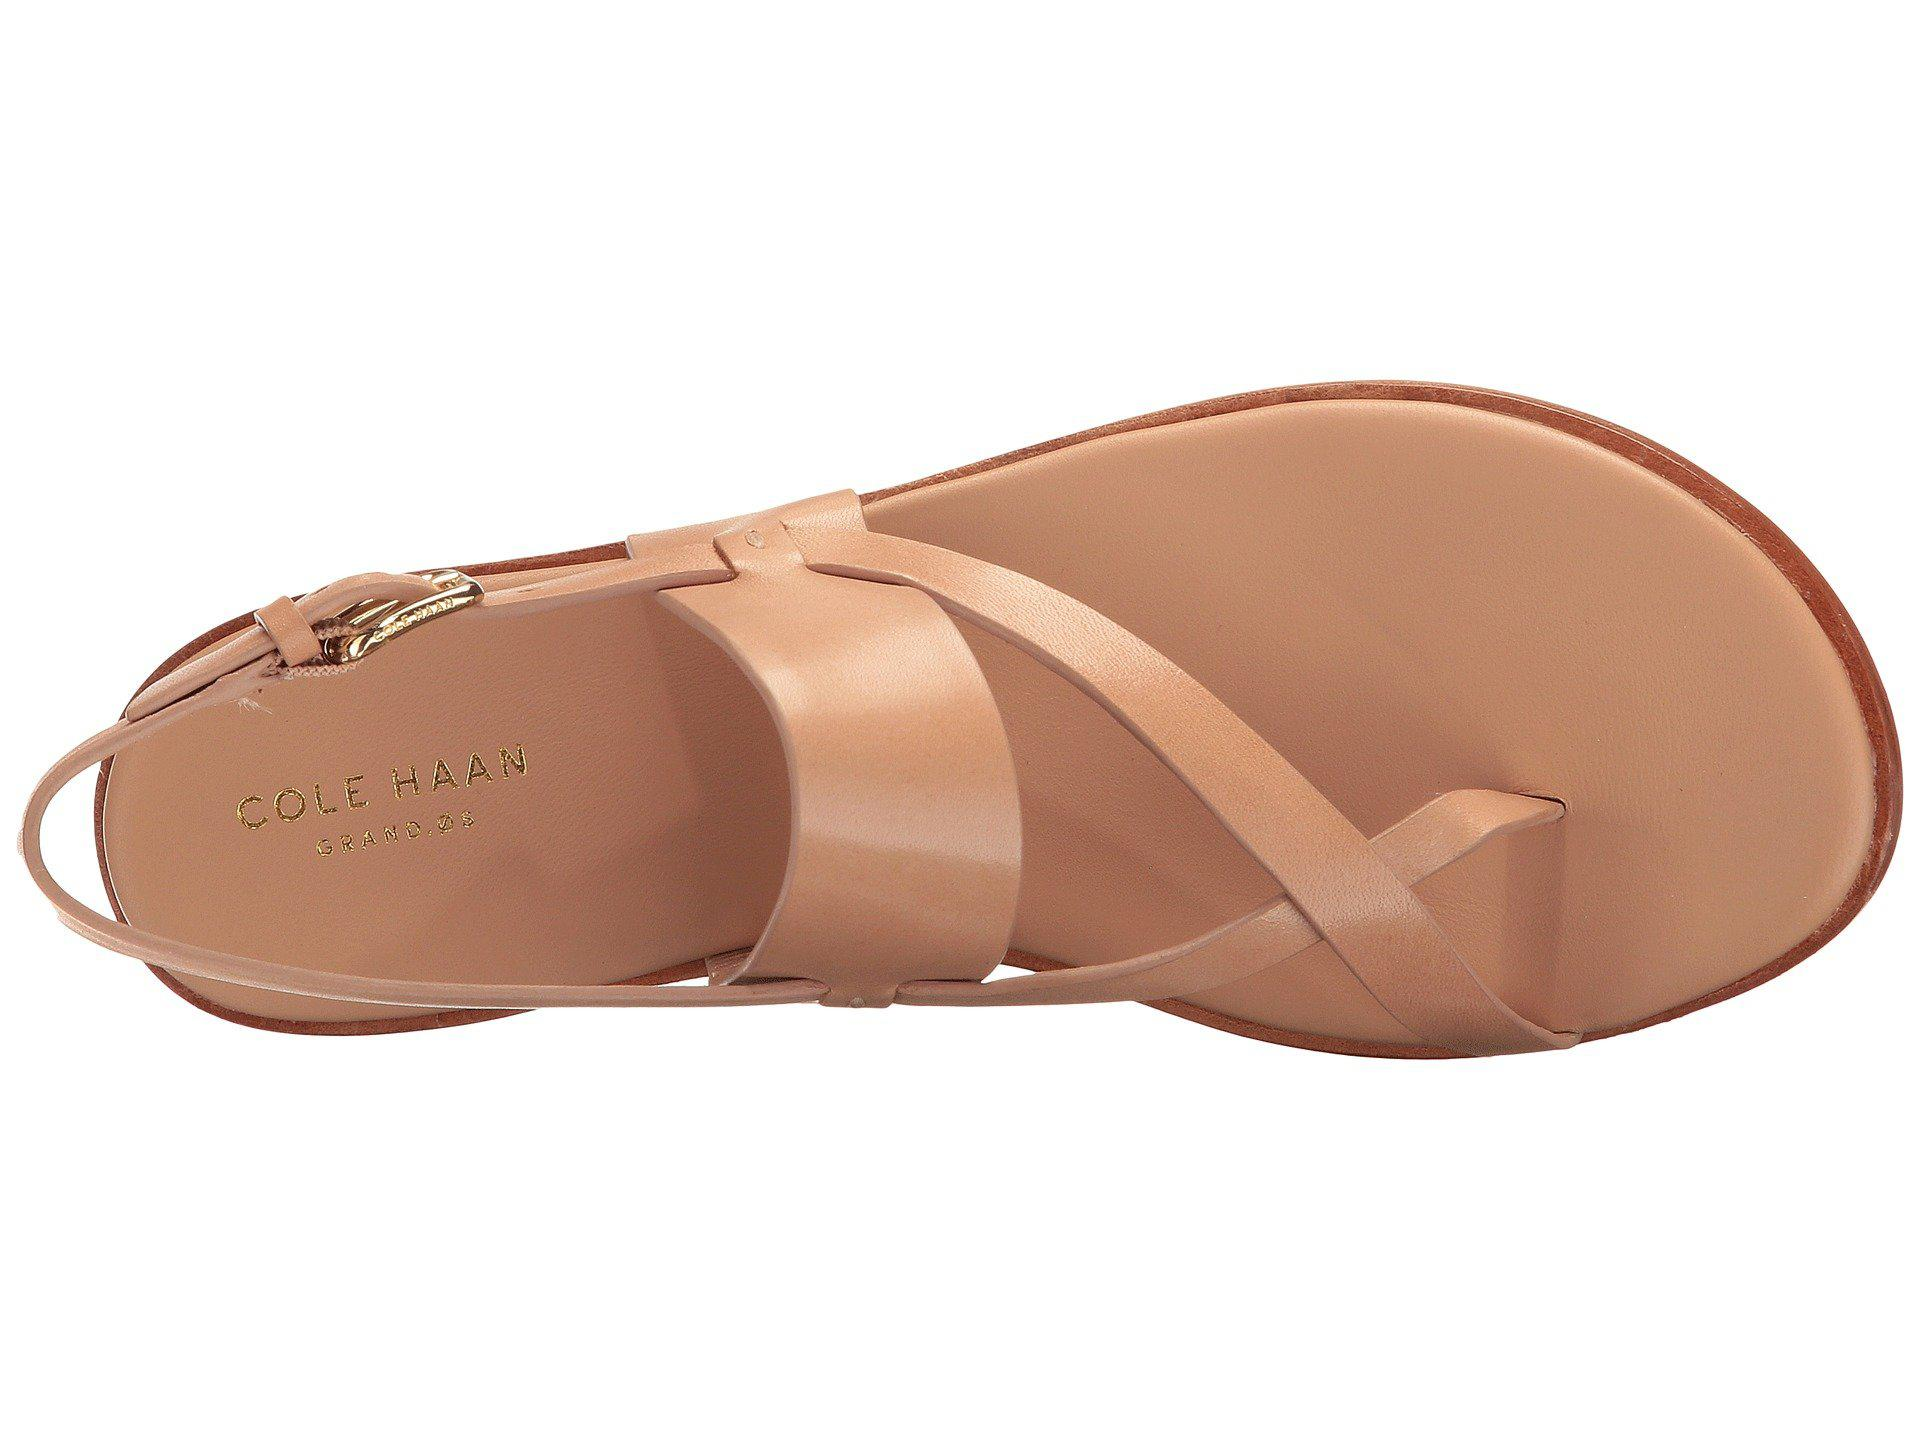 26e7a863012899 Cole Haan - Multicolor S Anica Thong Sandal - Lyst. View fullscreen